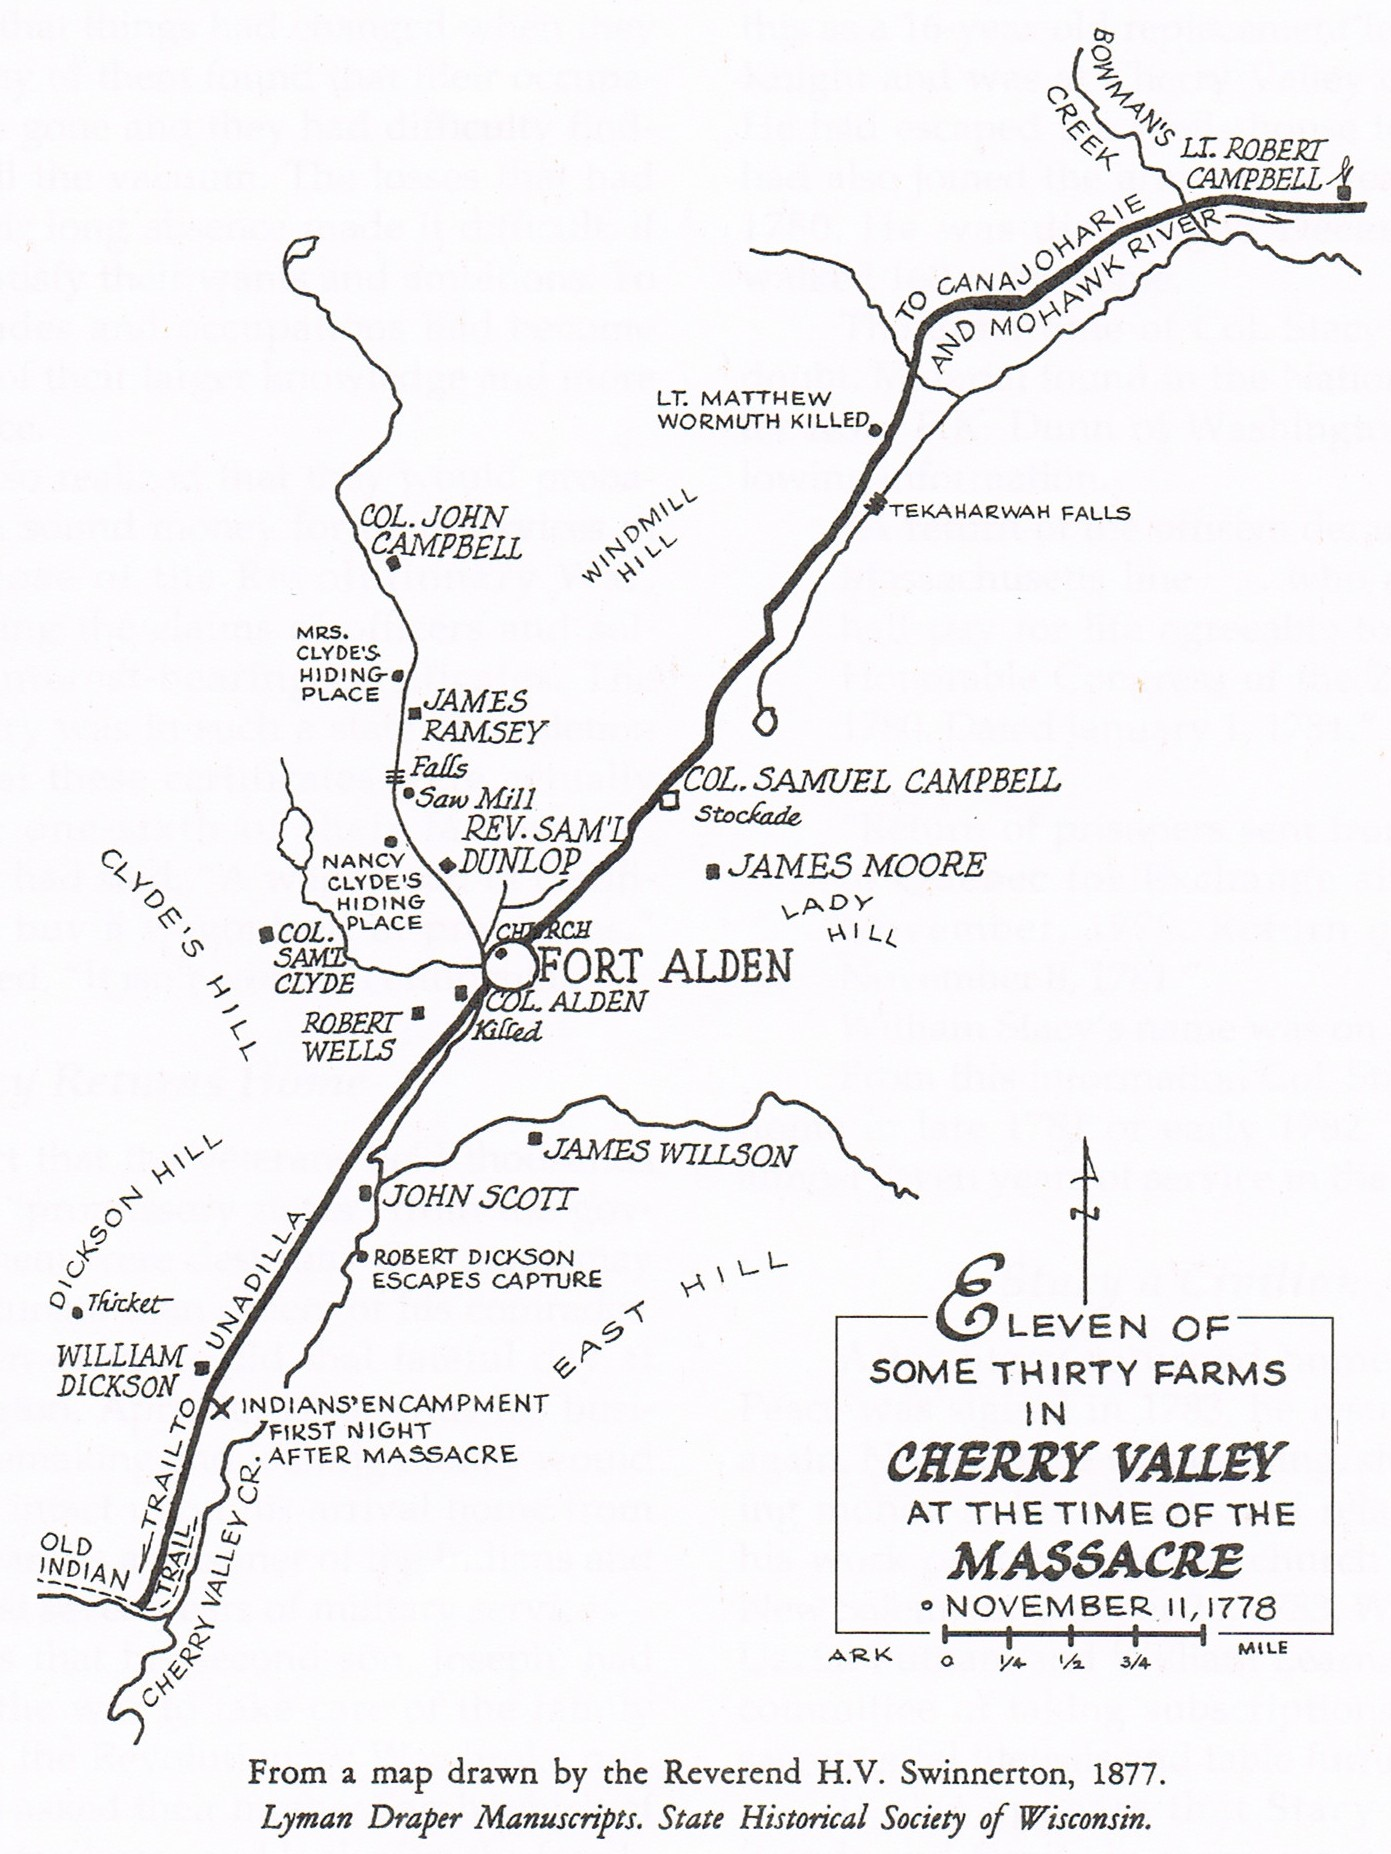 Map of Cherry Valley at the time of the massacre